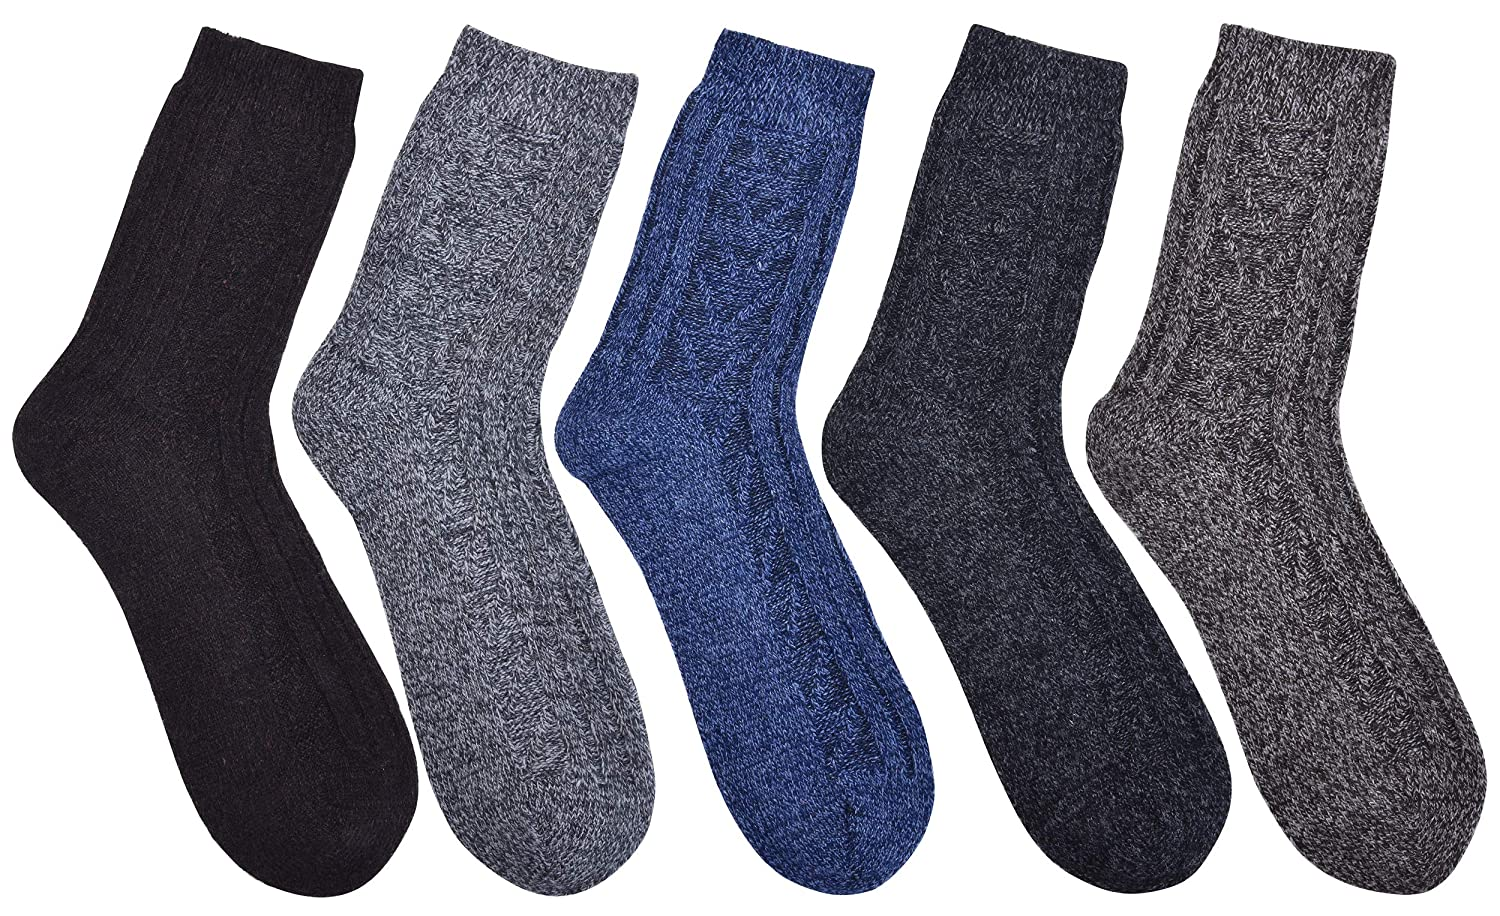 Mens Wool Socks Heavy Thick Knit Socks Fuzzy Warm Comfort Crew Winter Socks For Cold Weather 5 Pack